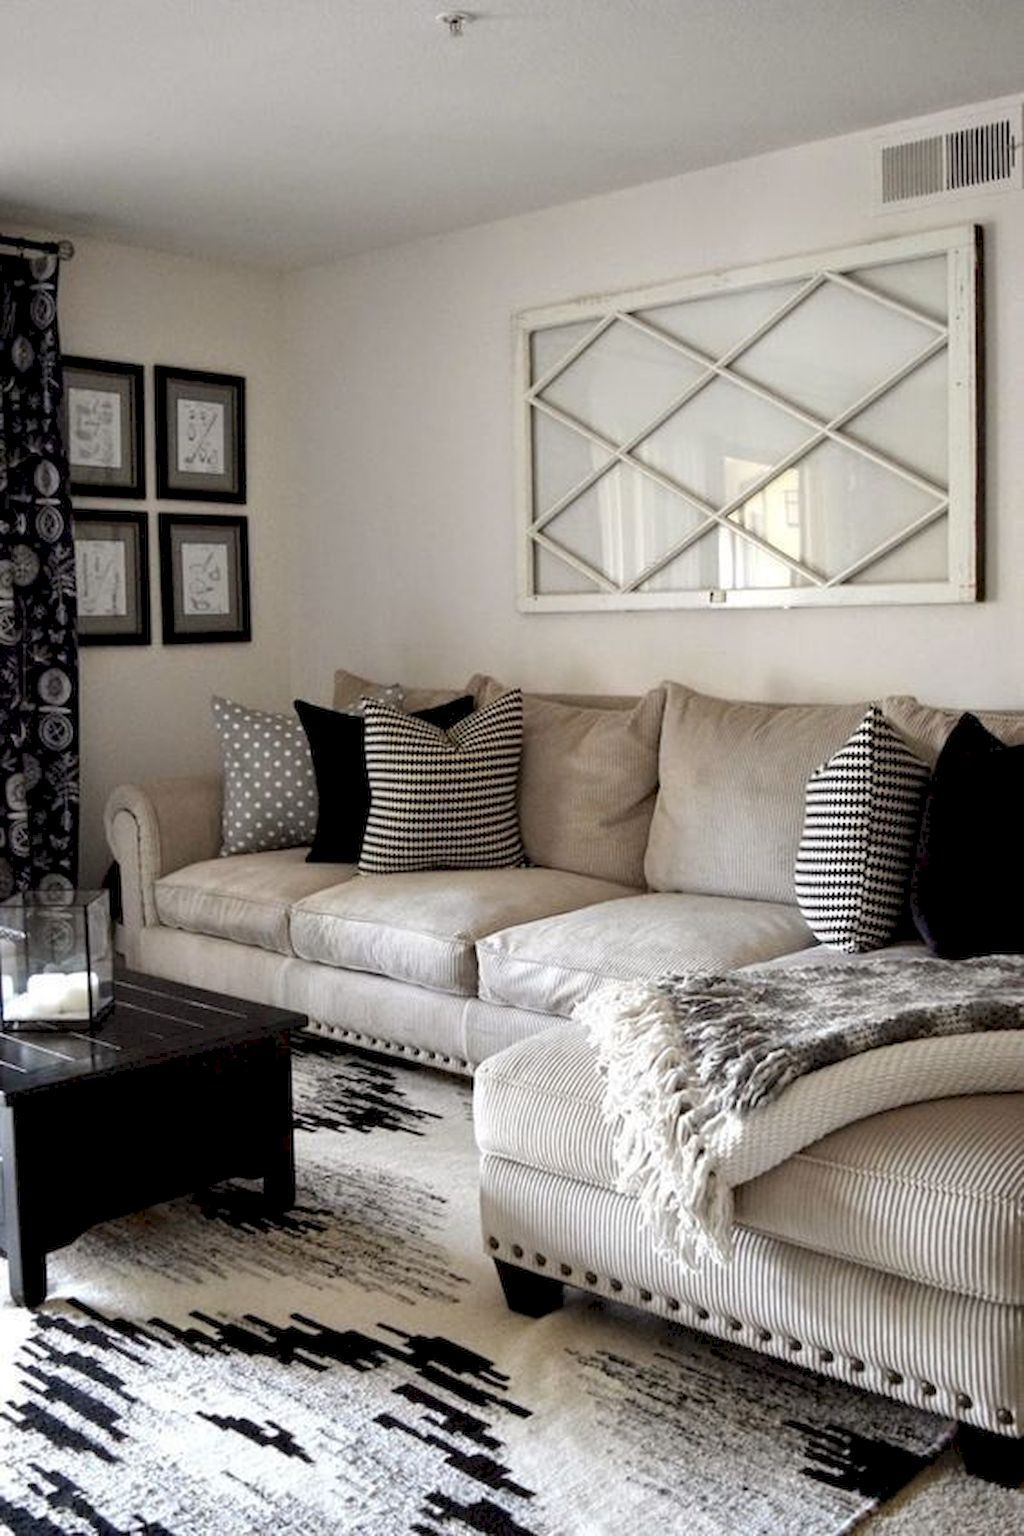 adorable 36 small living room ideas on a budget https besideroom